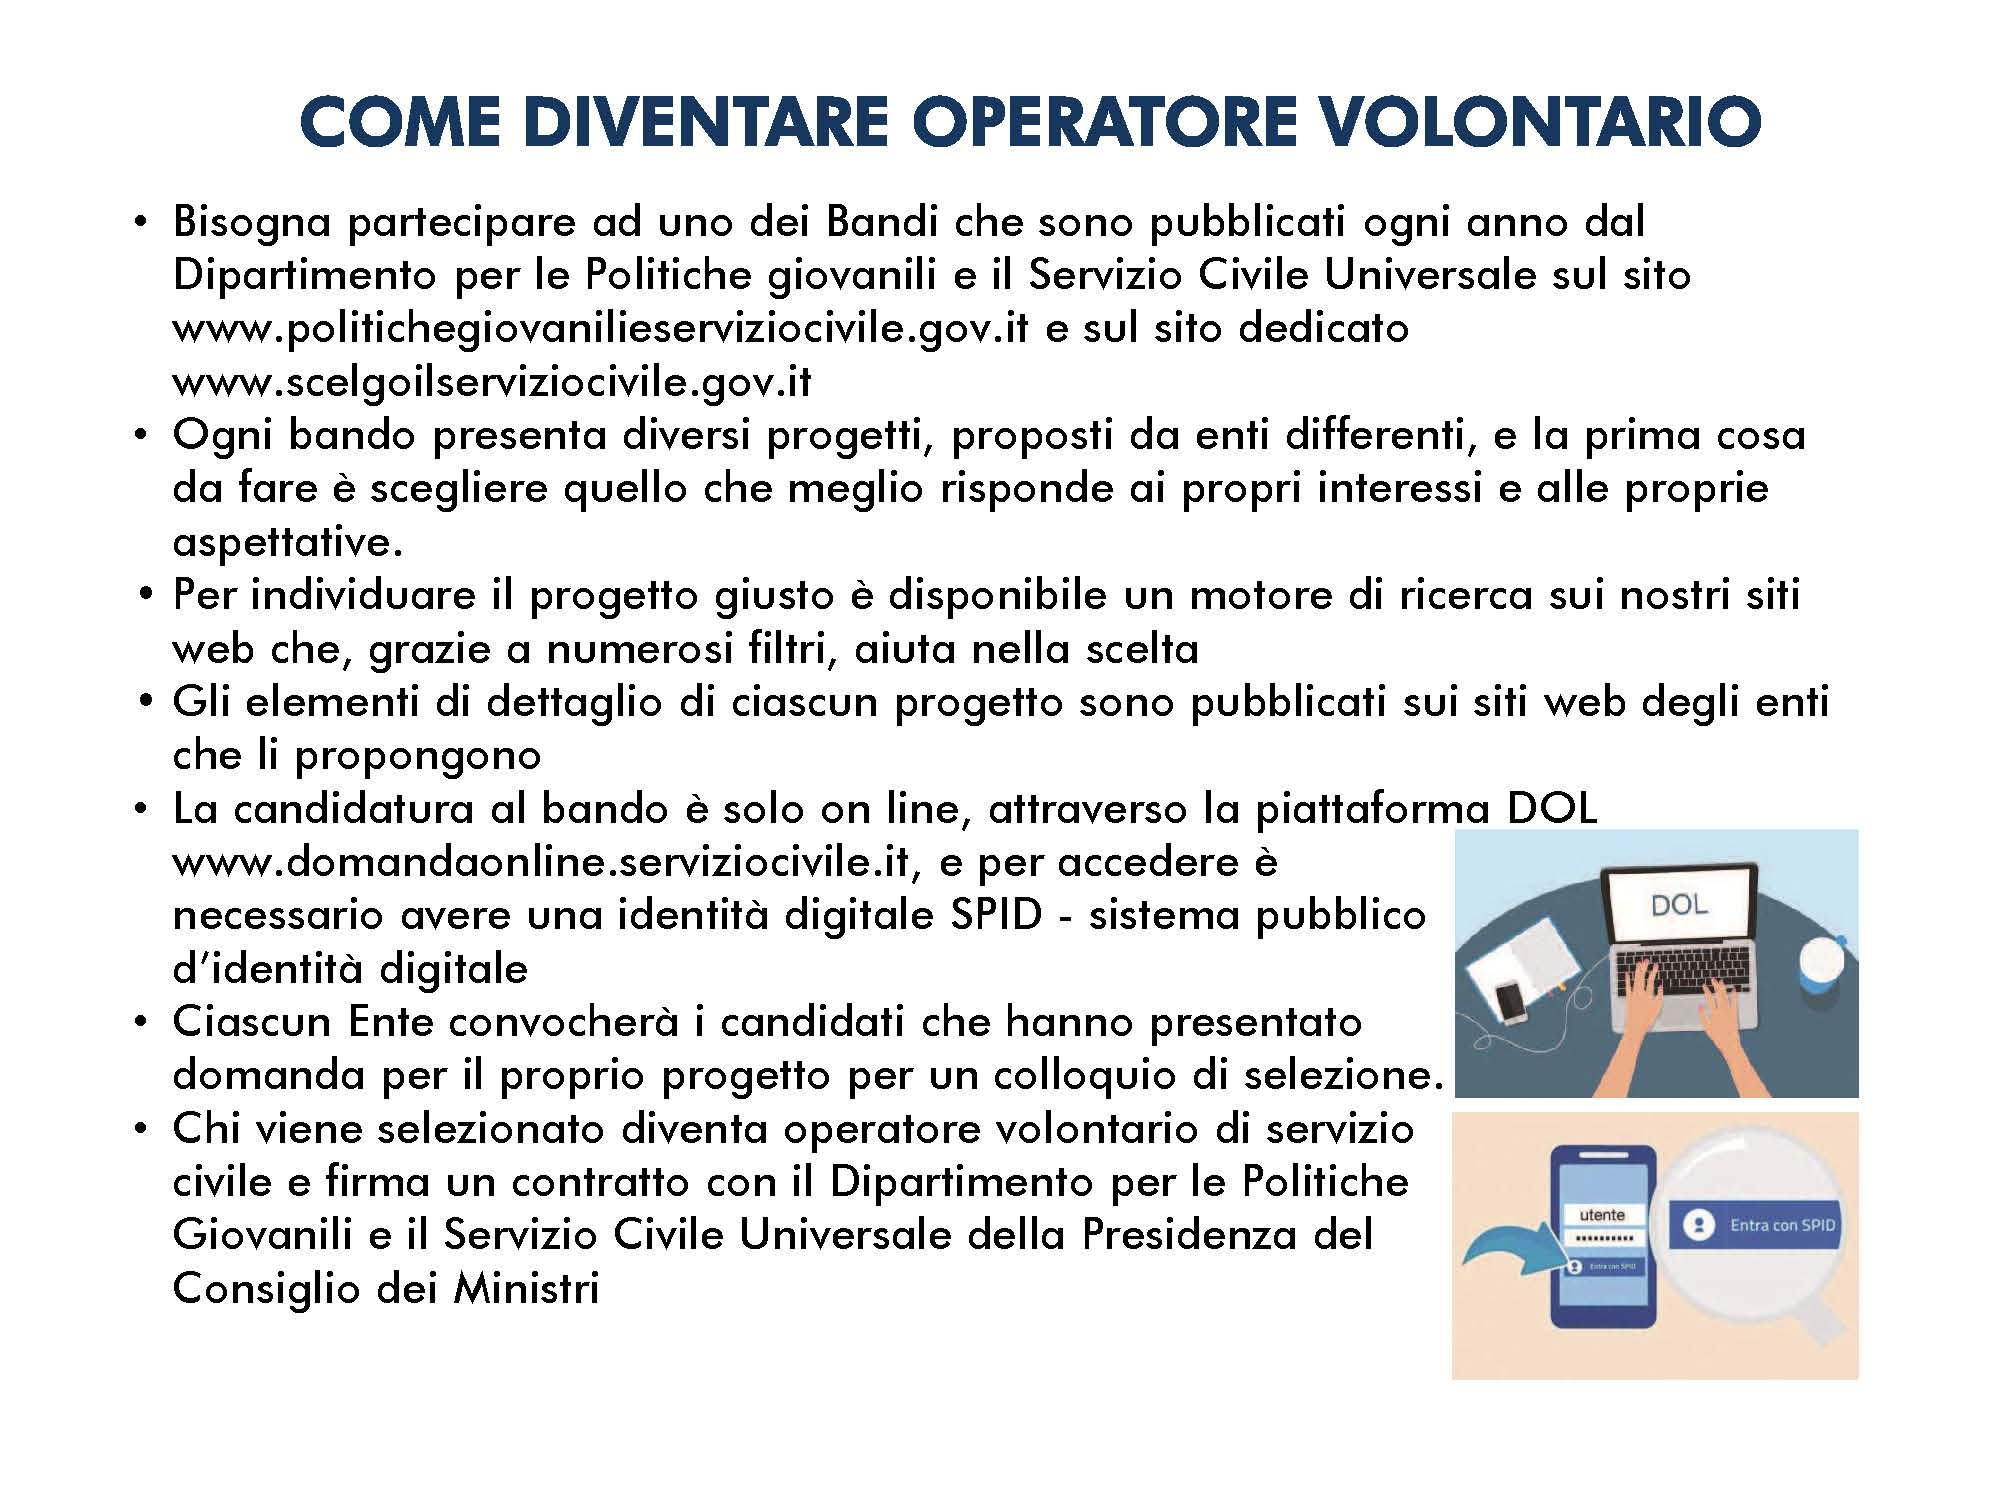 opuscolo2019_Page_12